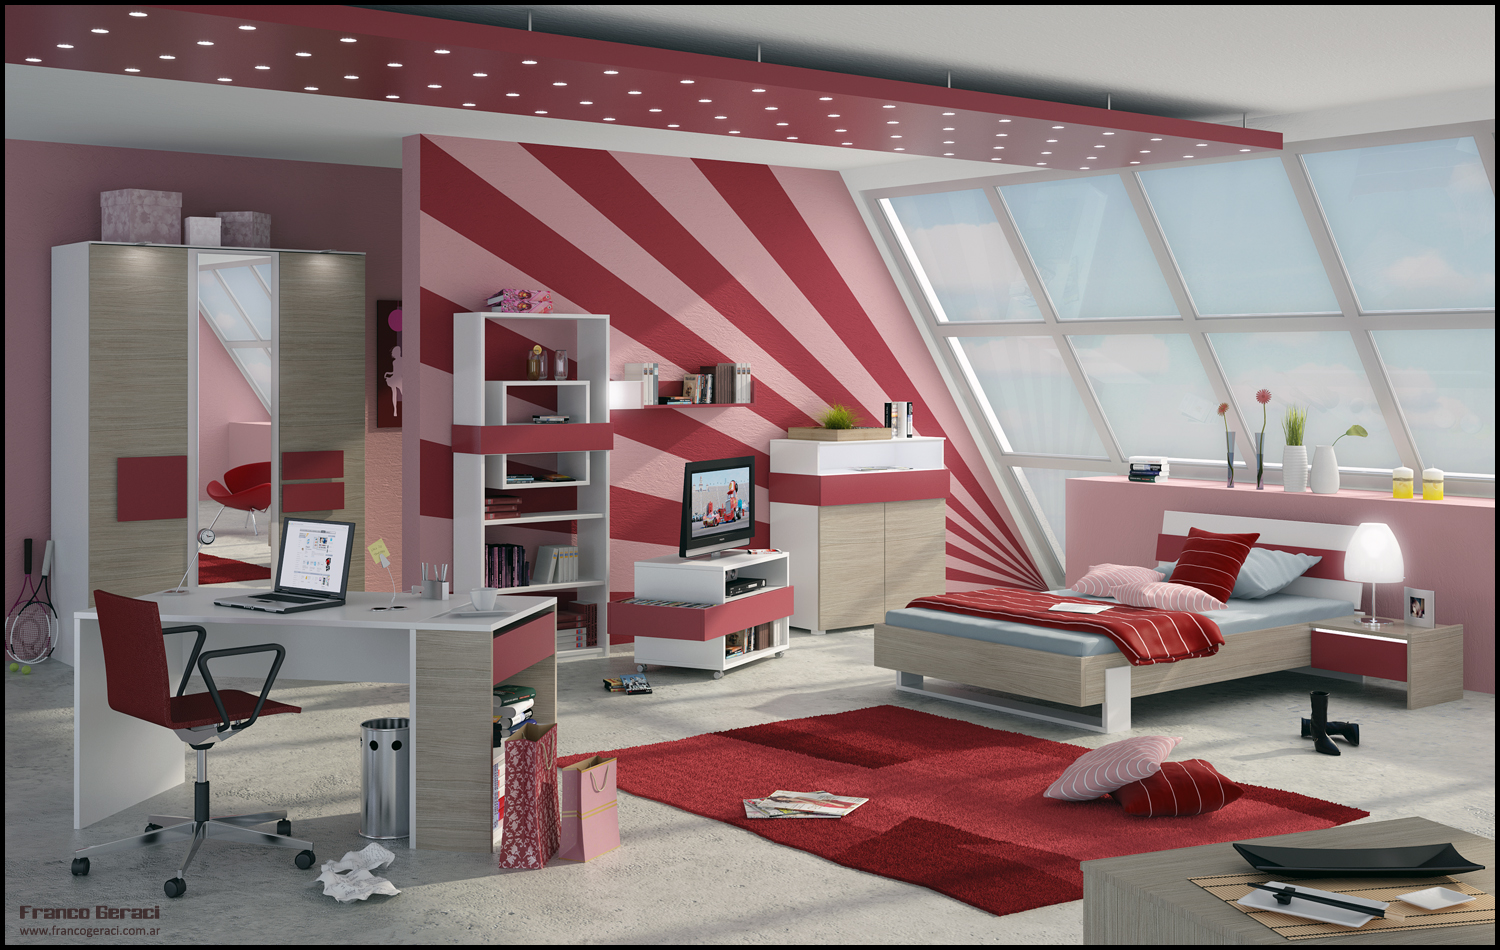 Teen Room Design Ideas teen girls room design ideas youtube 3droom By Feg